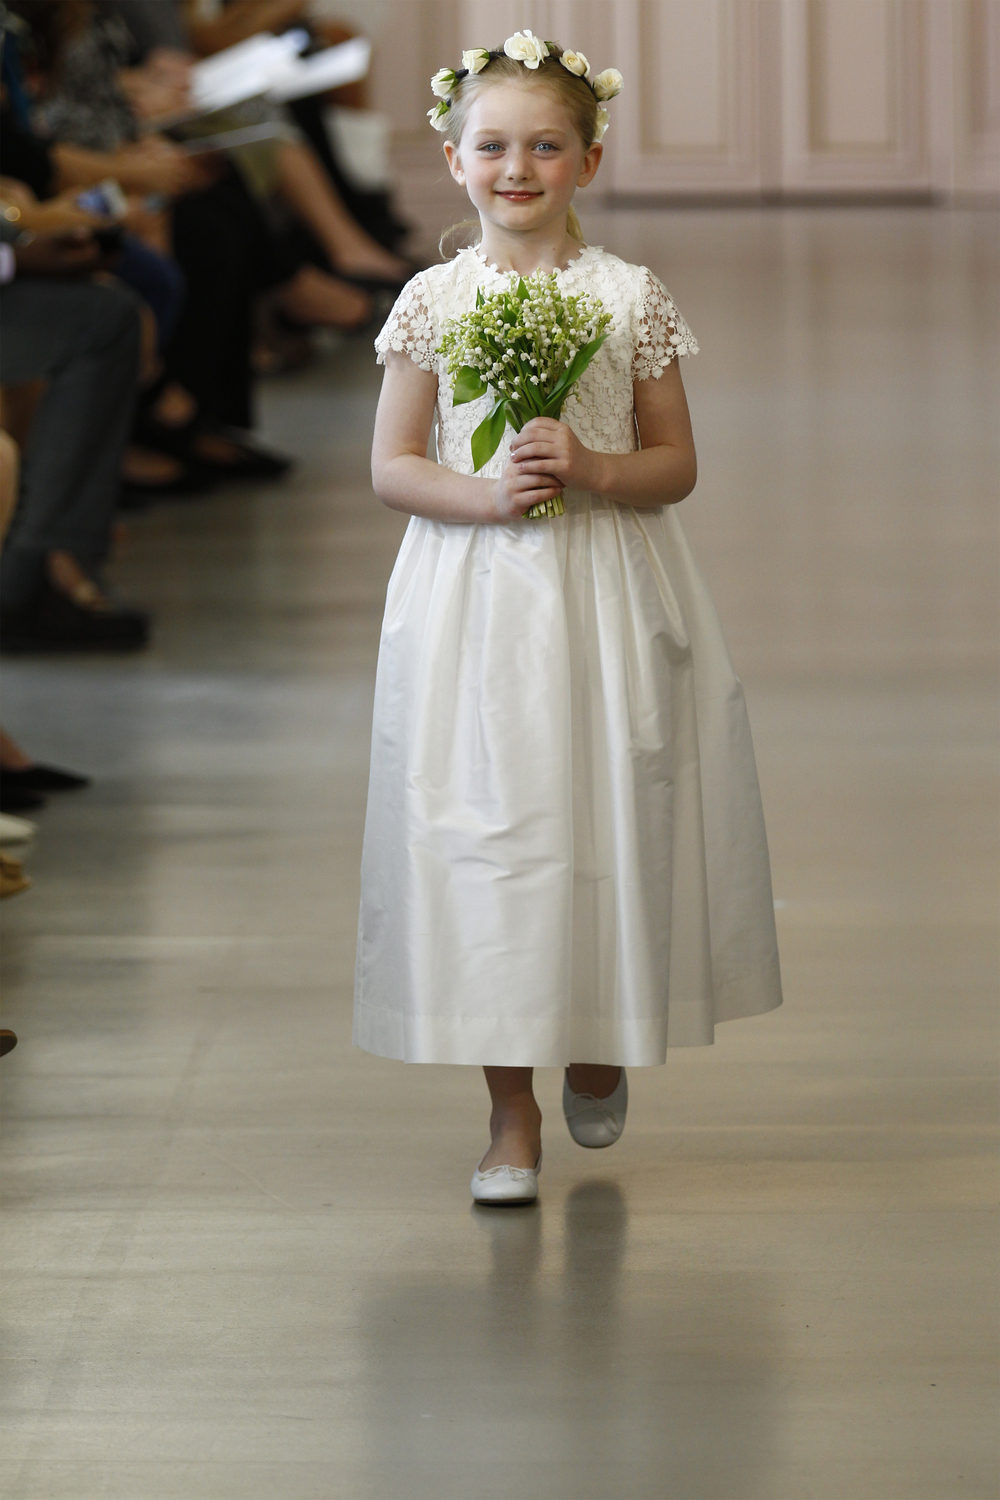 Alastriona - White silk snowflake lace flower girl dress with silk taffeta skirt. White leather ballerina shoes.   (Photos provided by Oscar de la Renta)